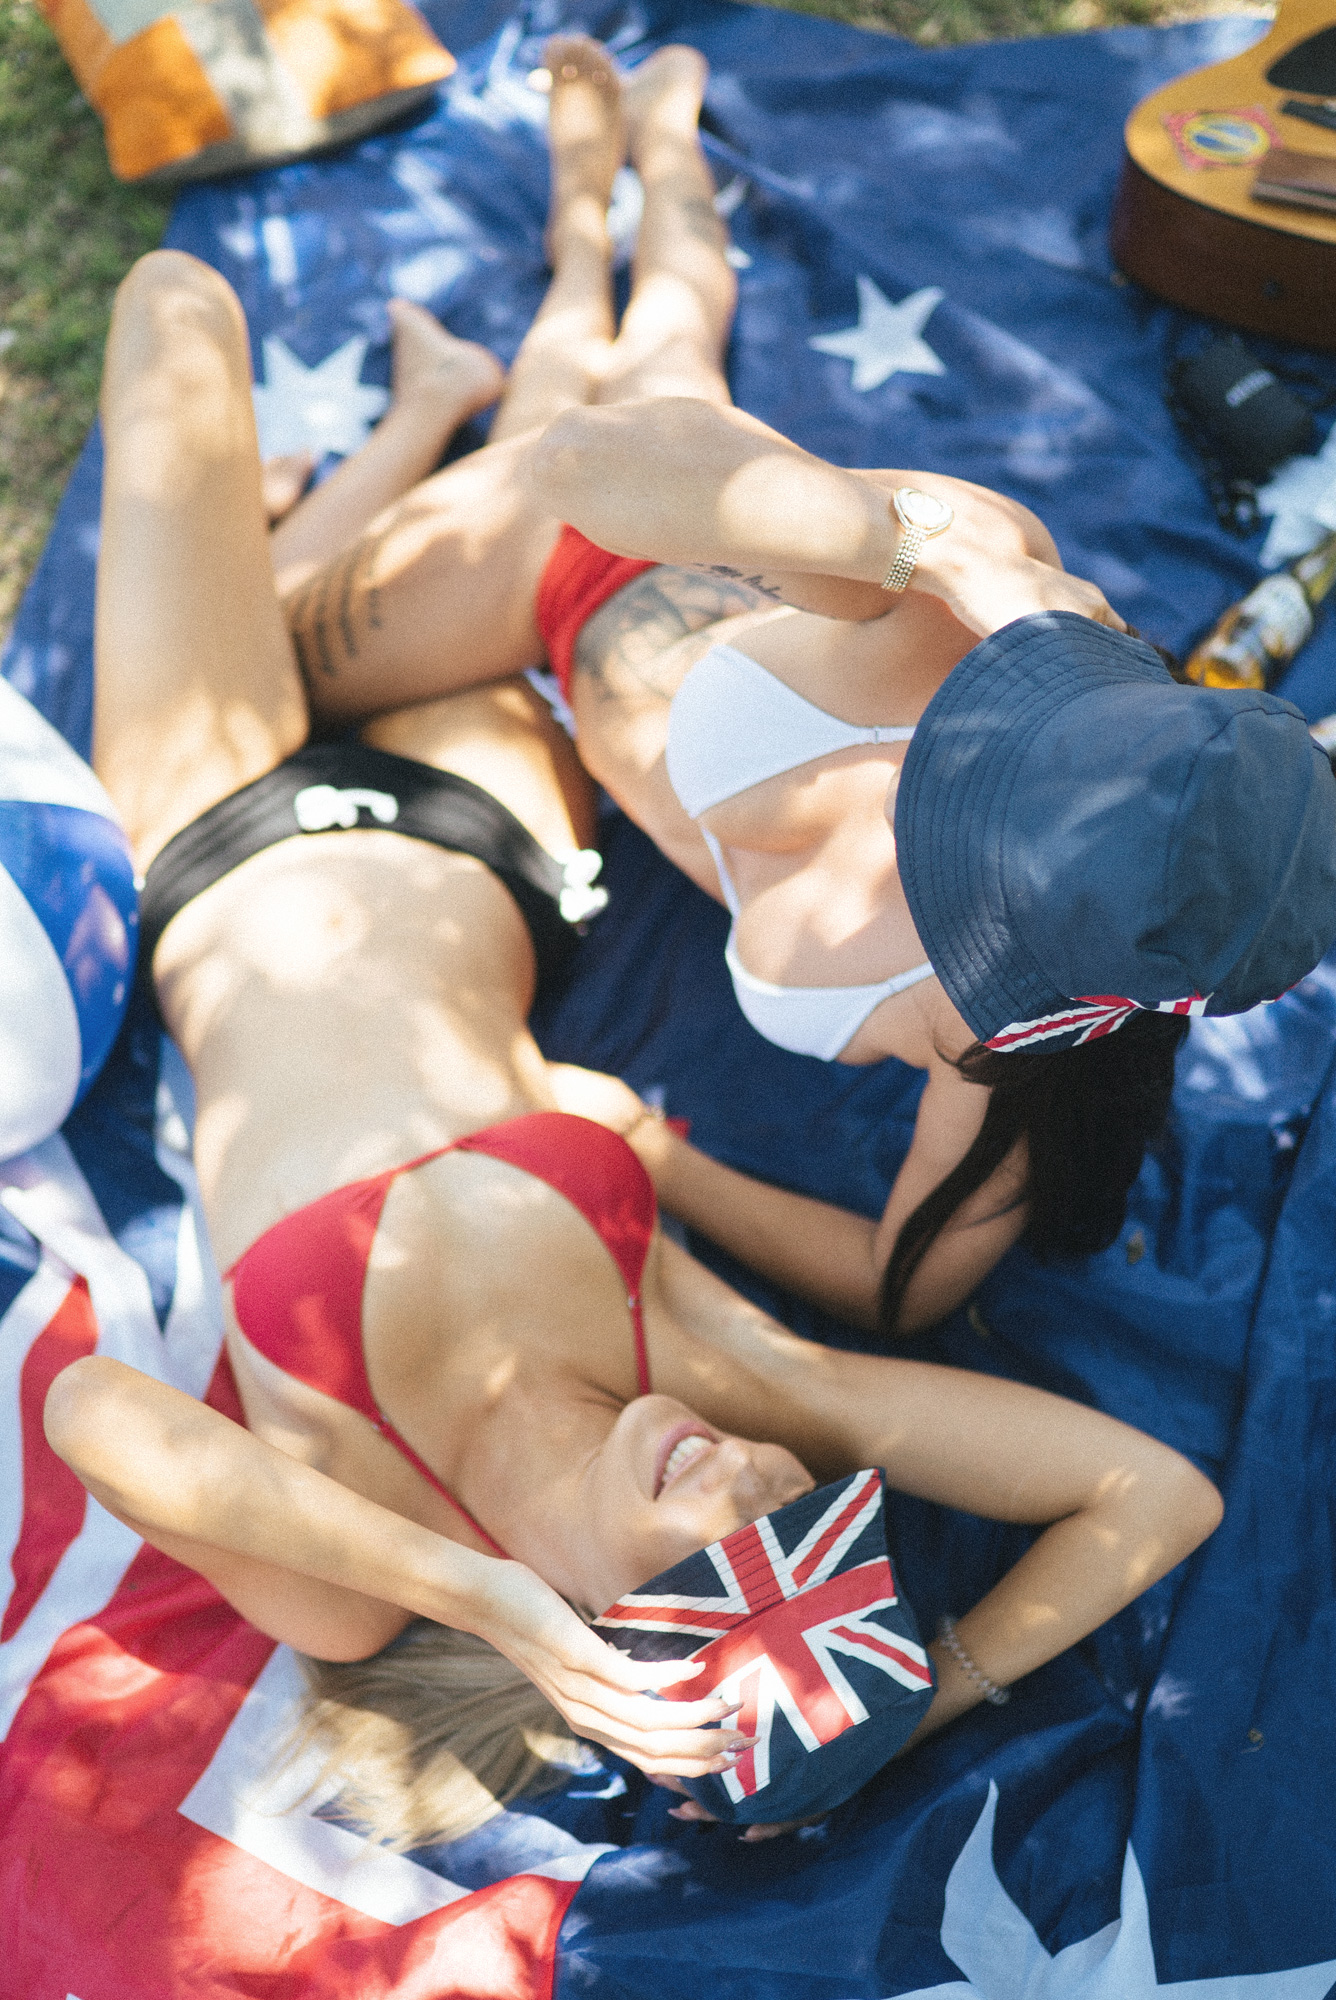 australiaday_babes_garden_shoot_justinfox_above